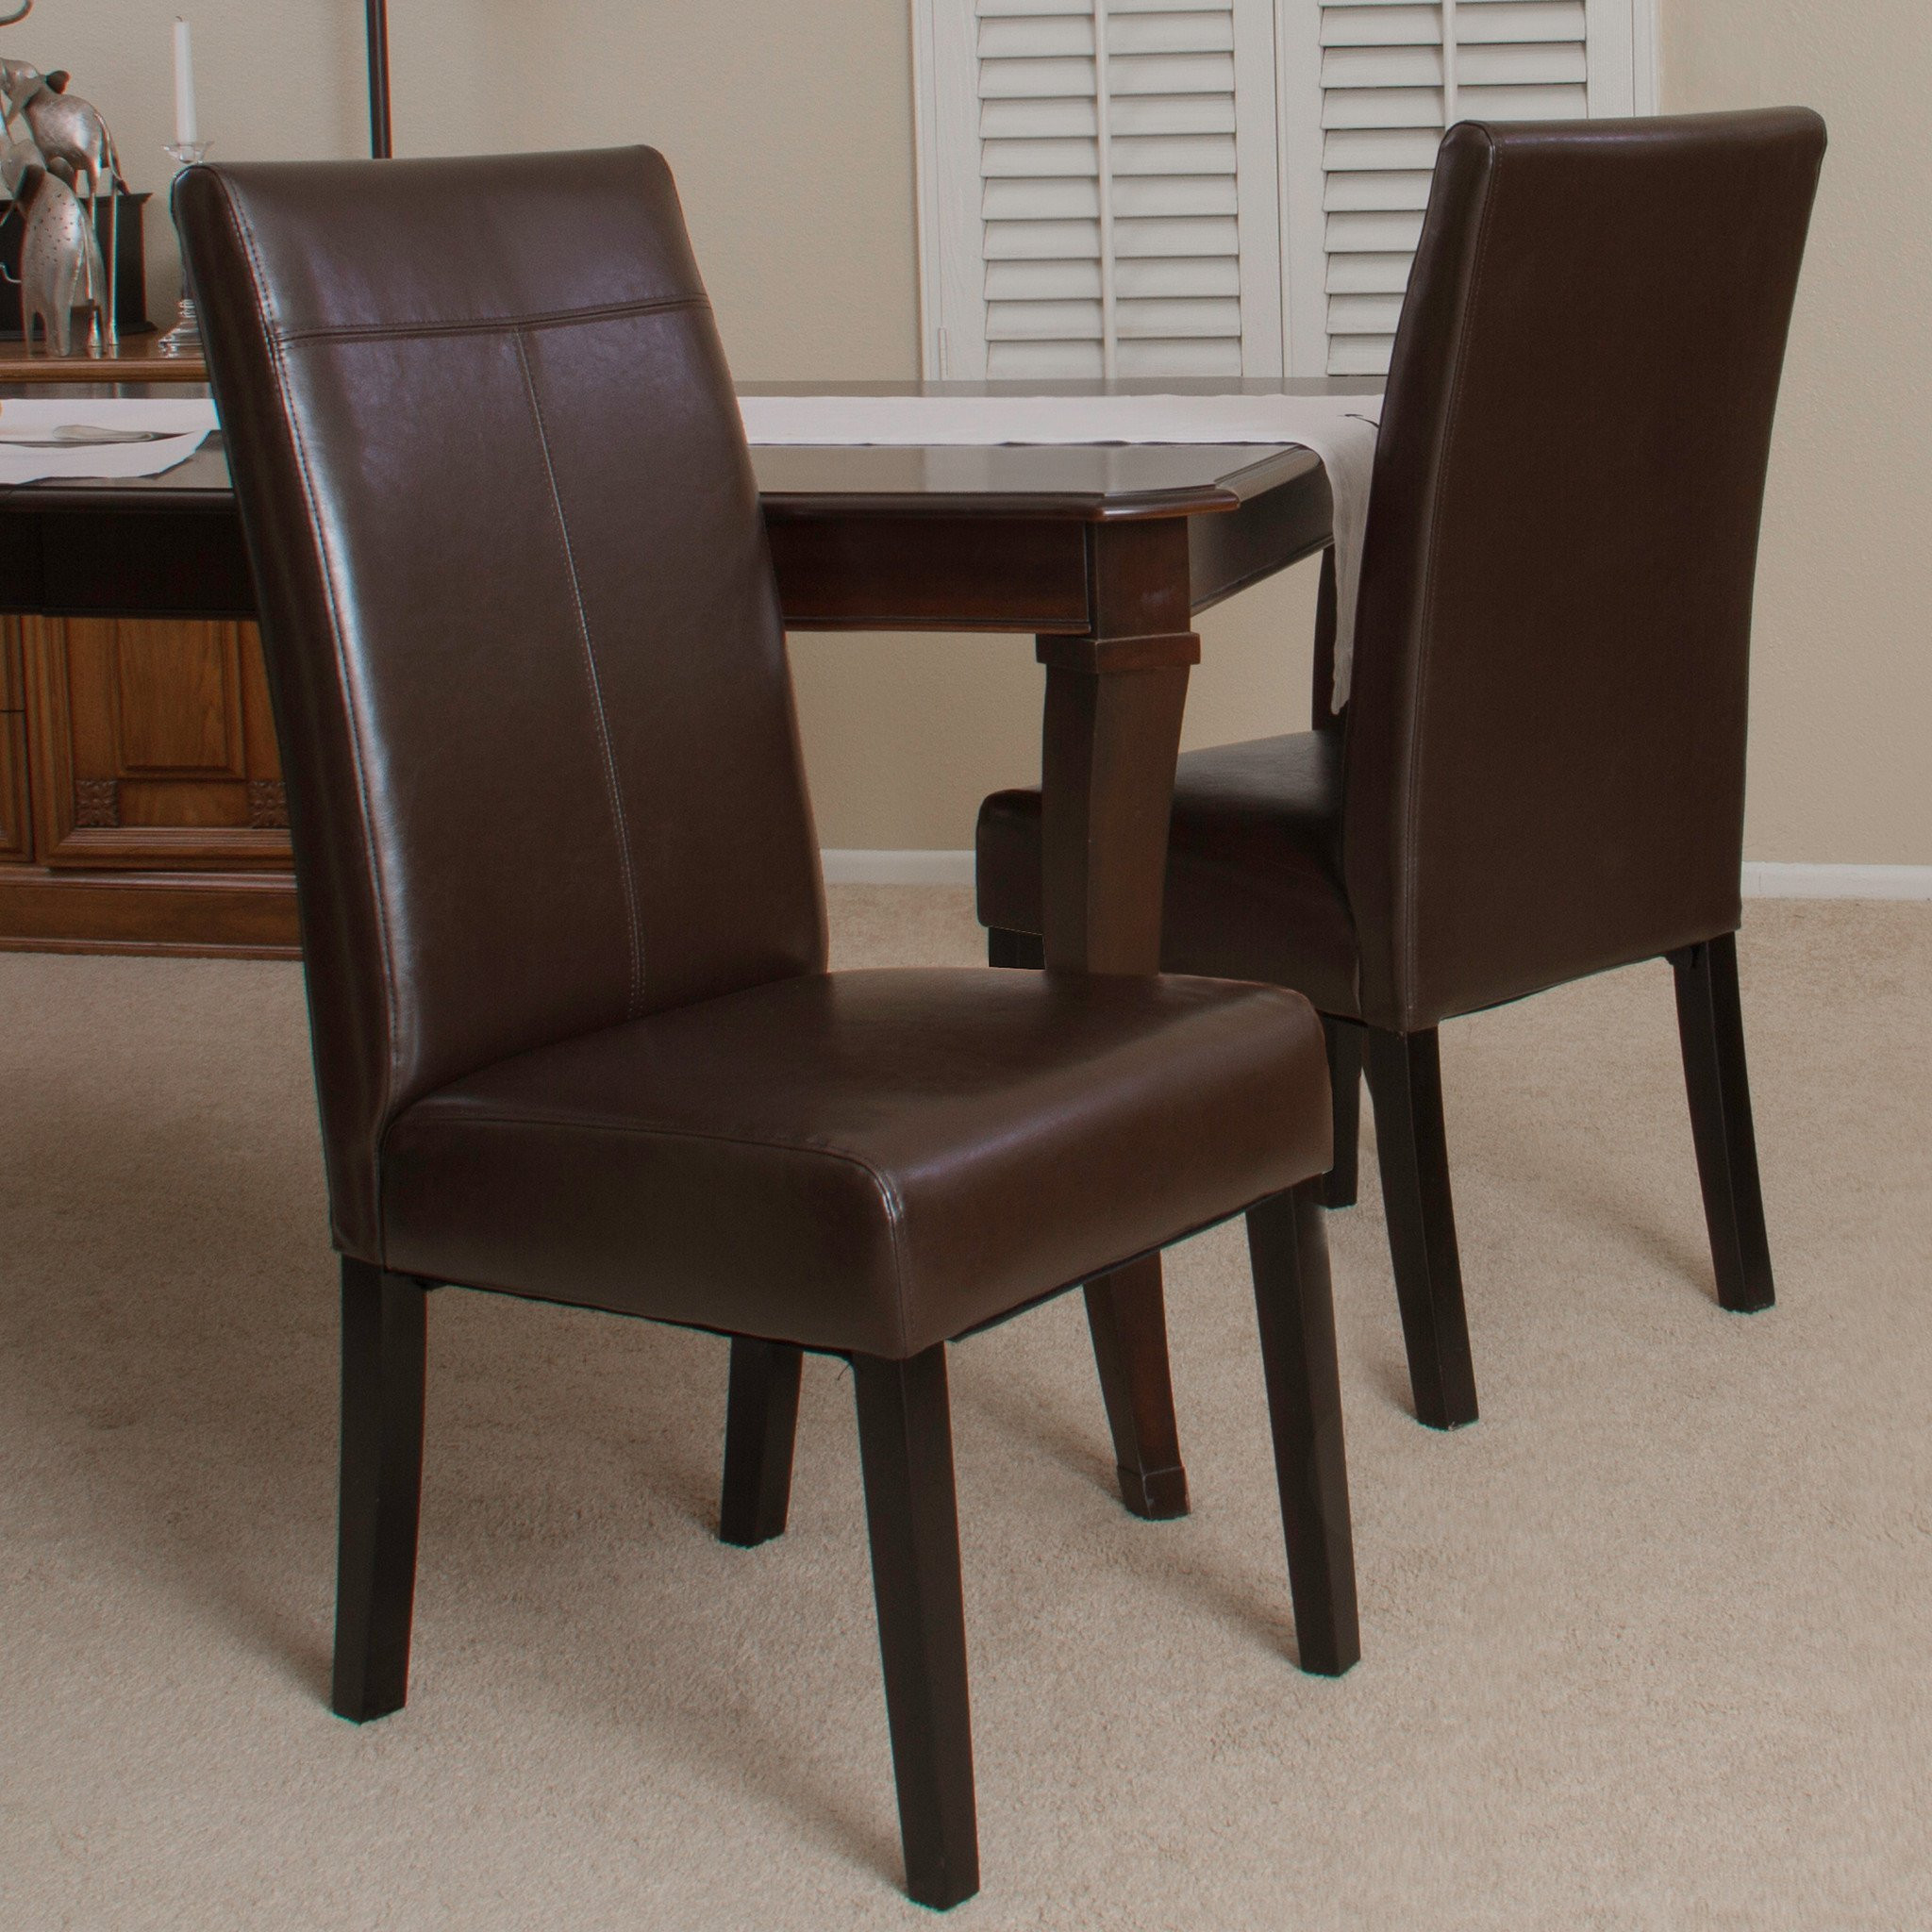 Fitzgerald Chocolate Brown Dining Chair (Set of 2)